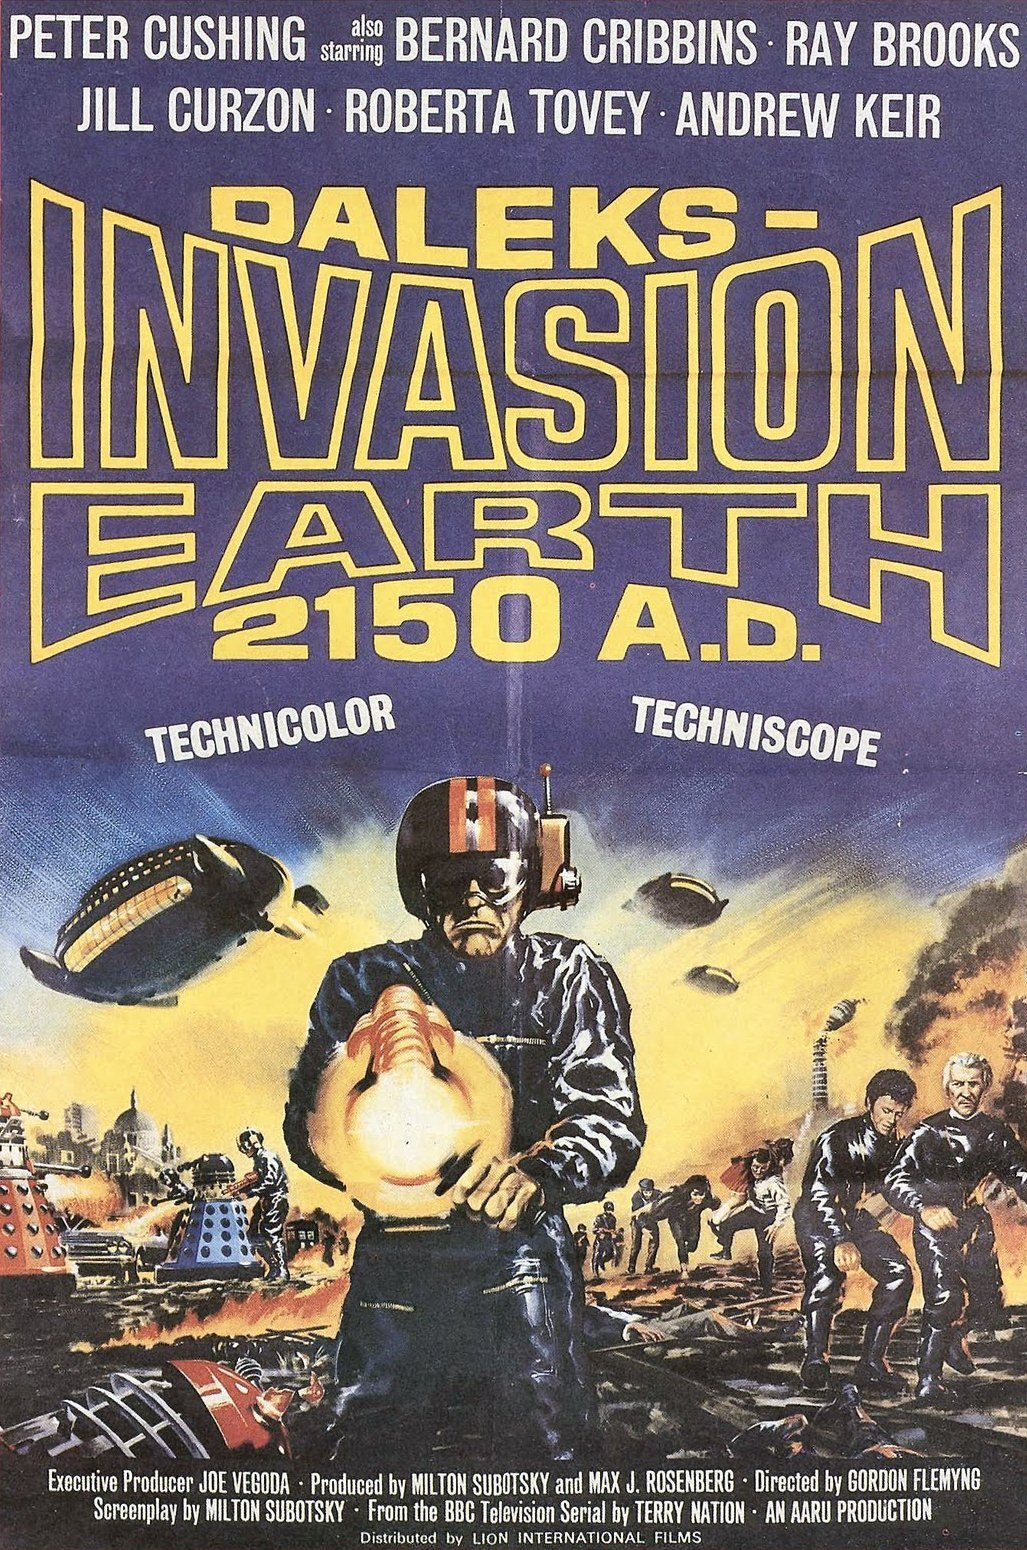 http://static.tvtropes.org/pmwiki/pub/images/daleks_invasion_earth.jpg